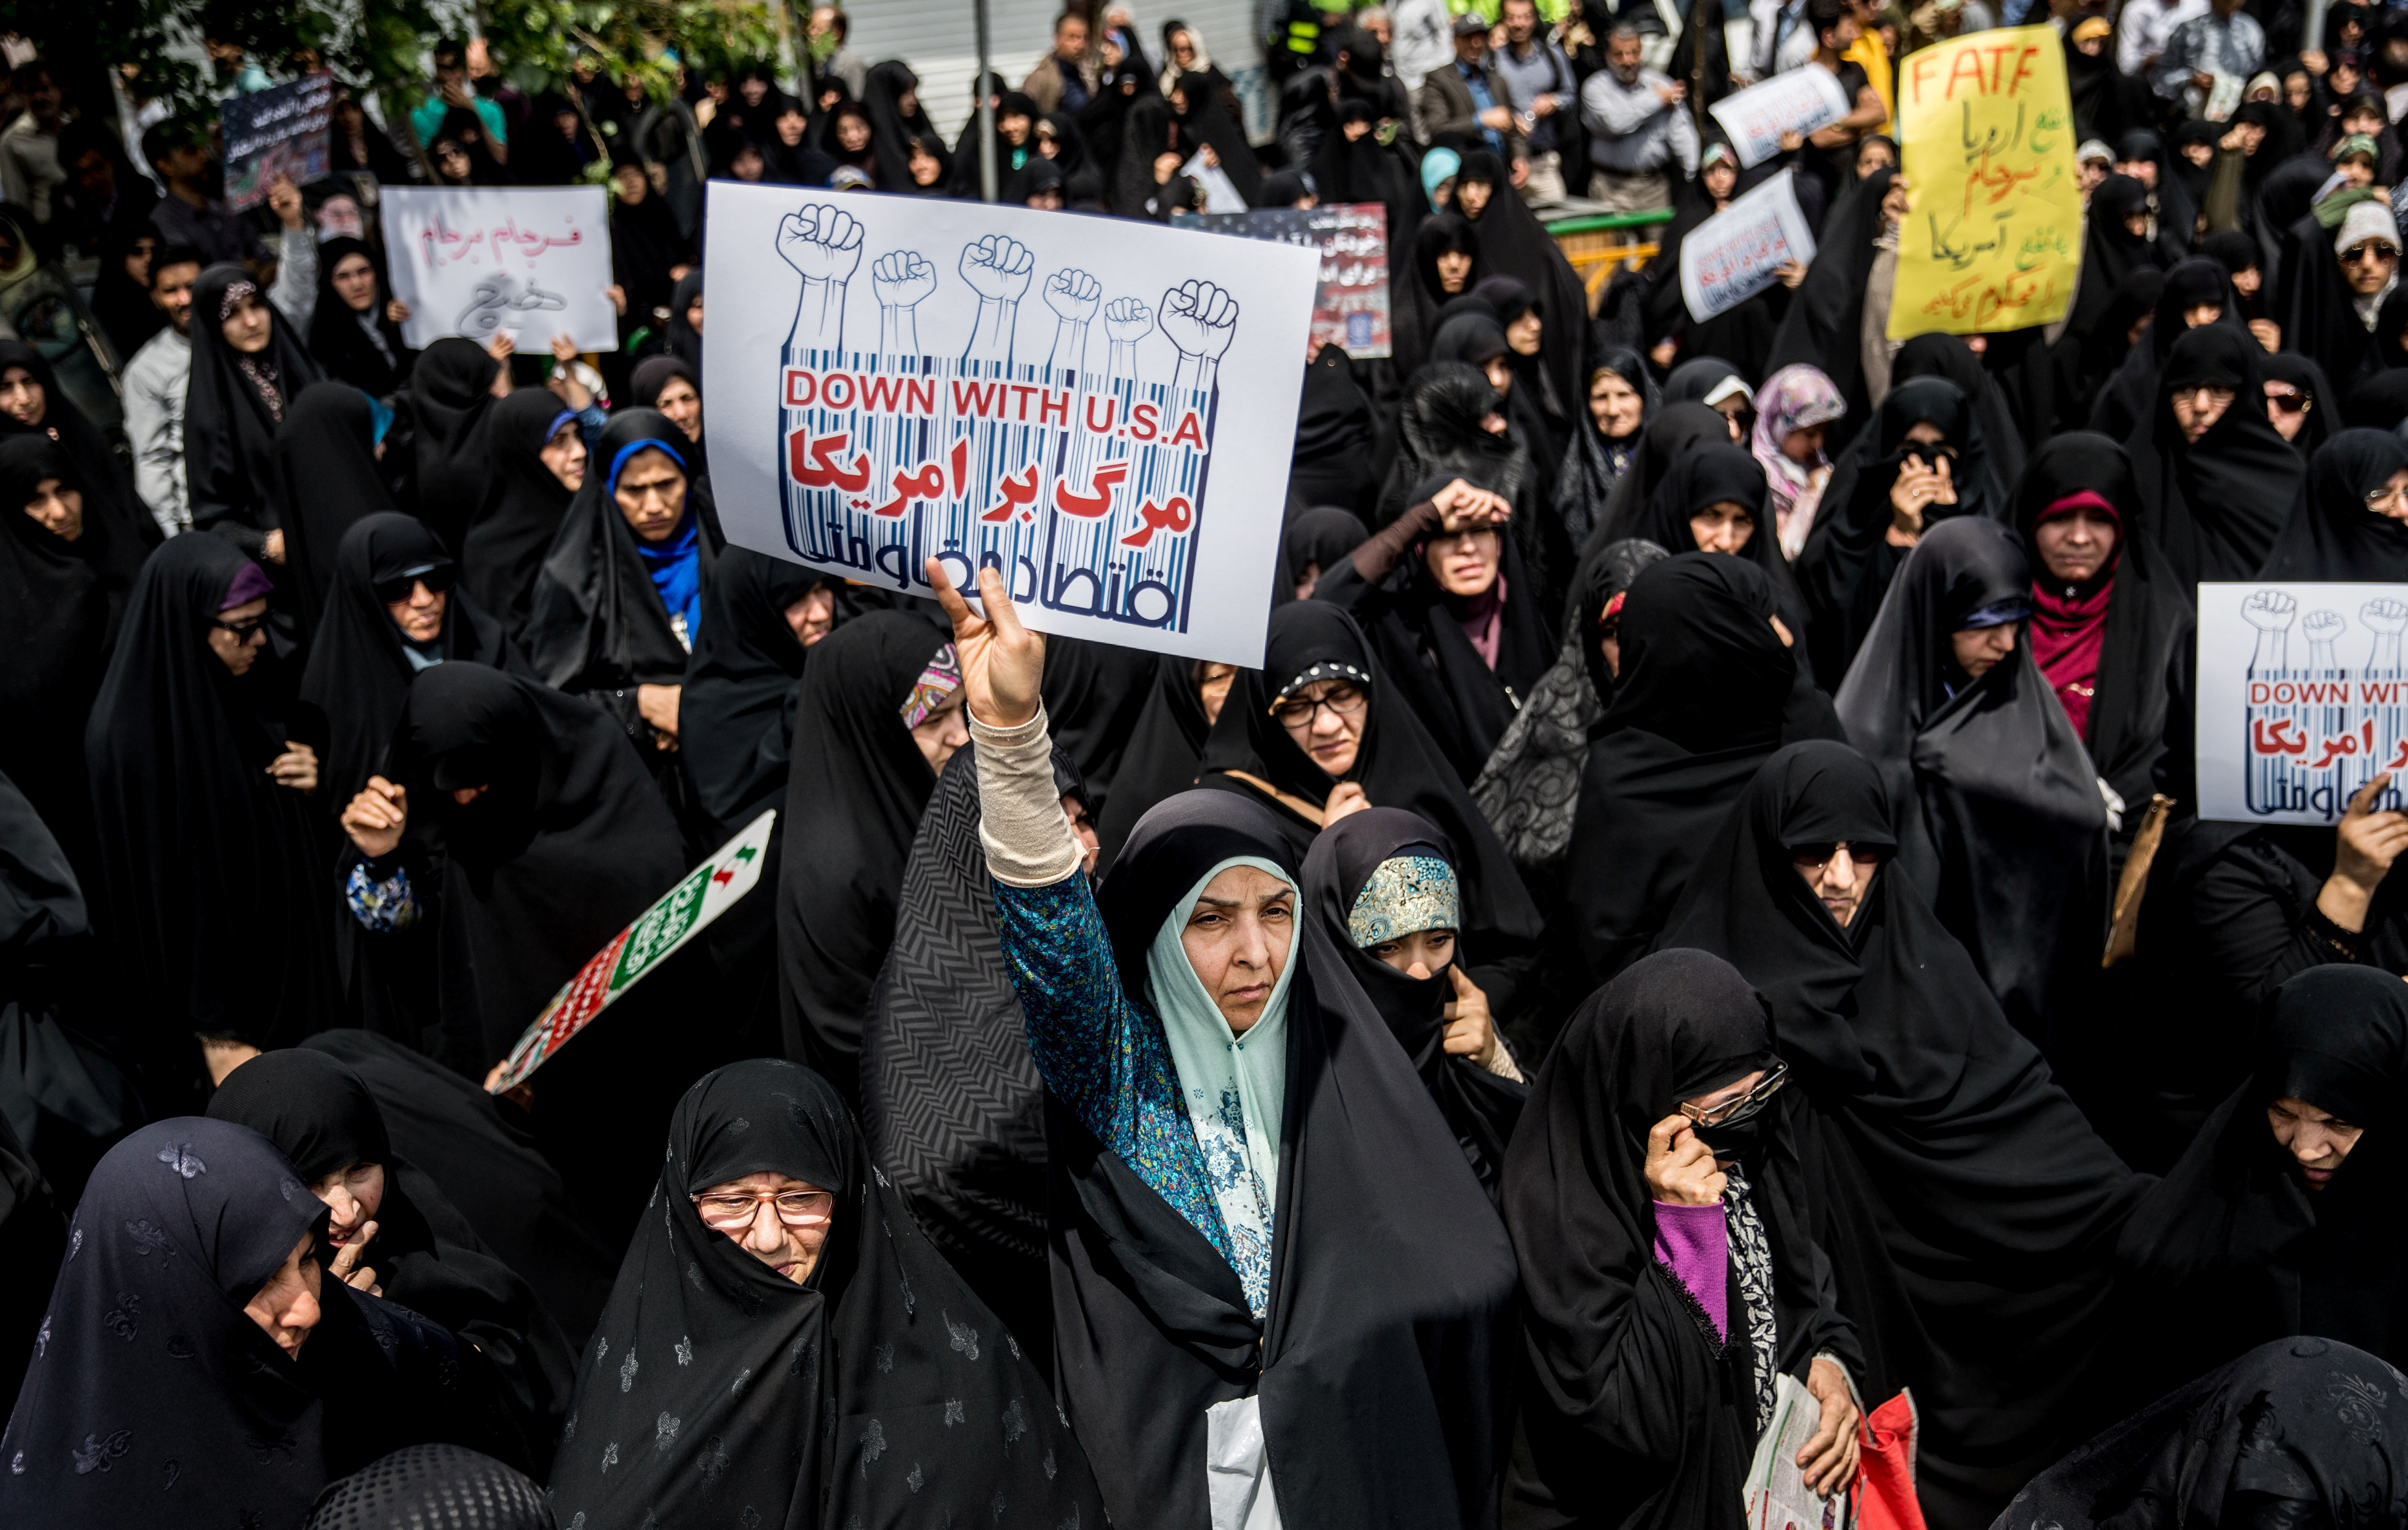 Iranian women gather during a protest against President Donald Trump's decision to walk out of the 2015 nuclear deal, in Tehran, Iran, May 11, 2018.